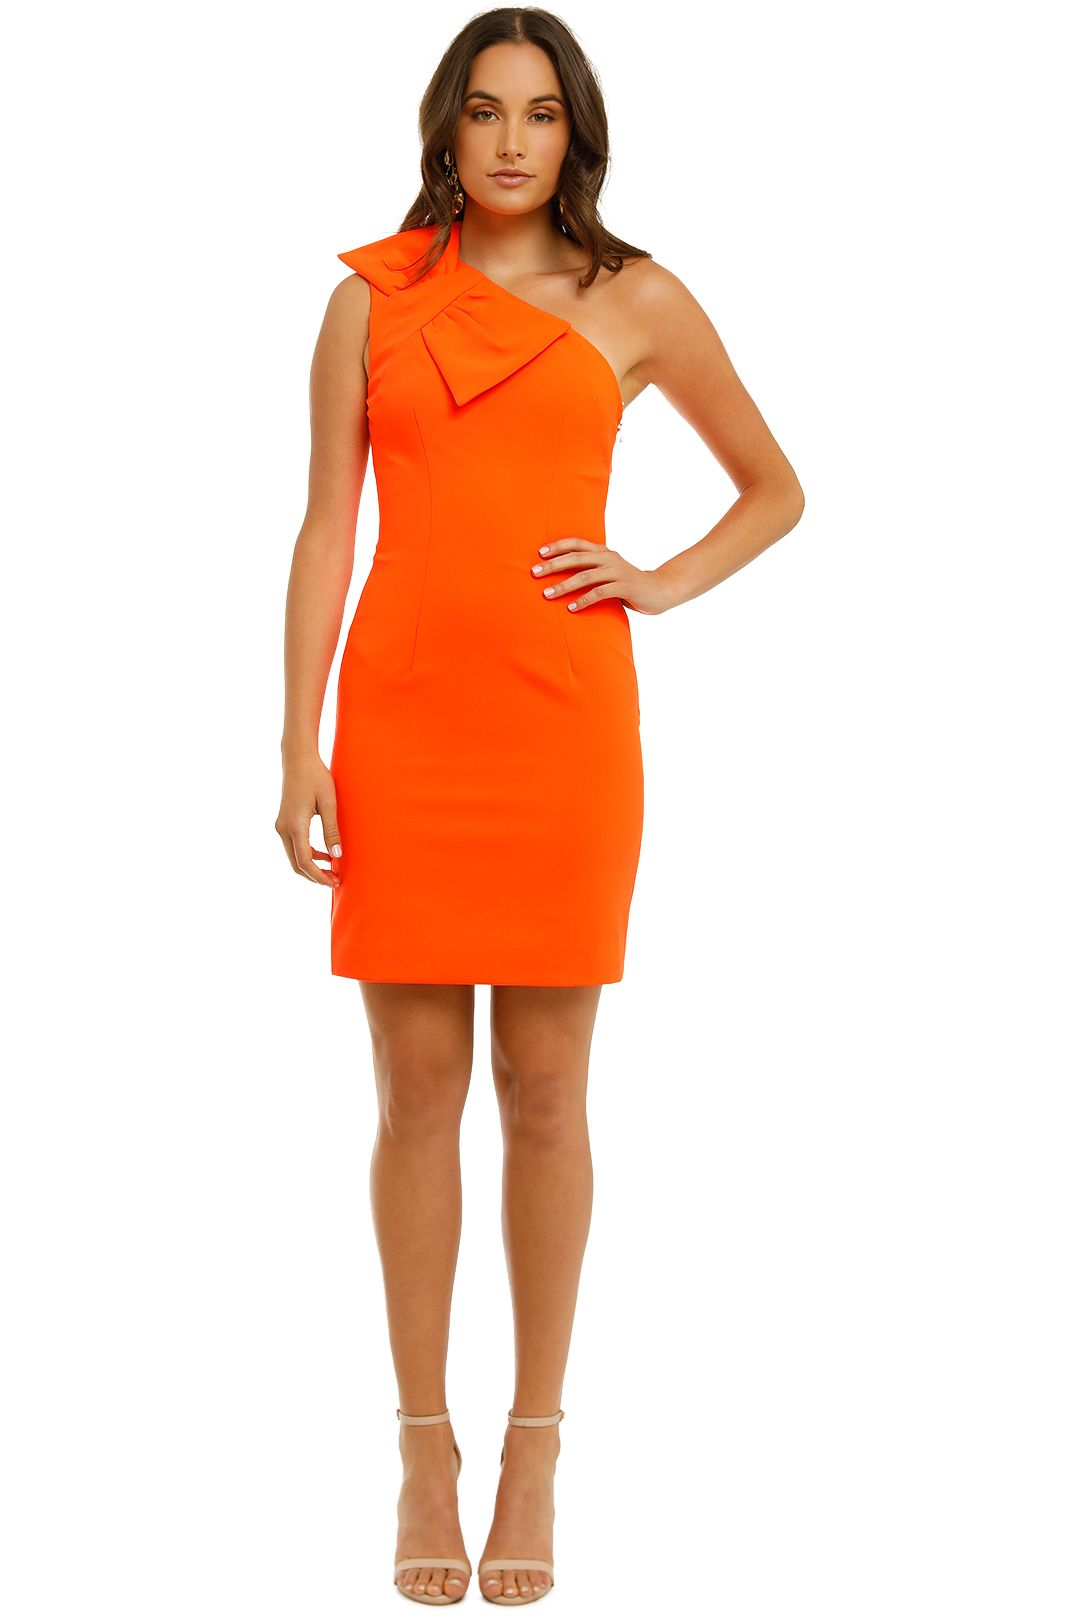 By-Johnny-Belle-Bow-Mini-Dress-Neon-Orange-Front